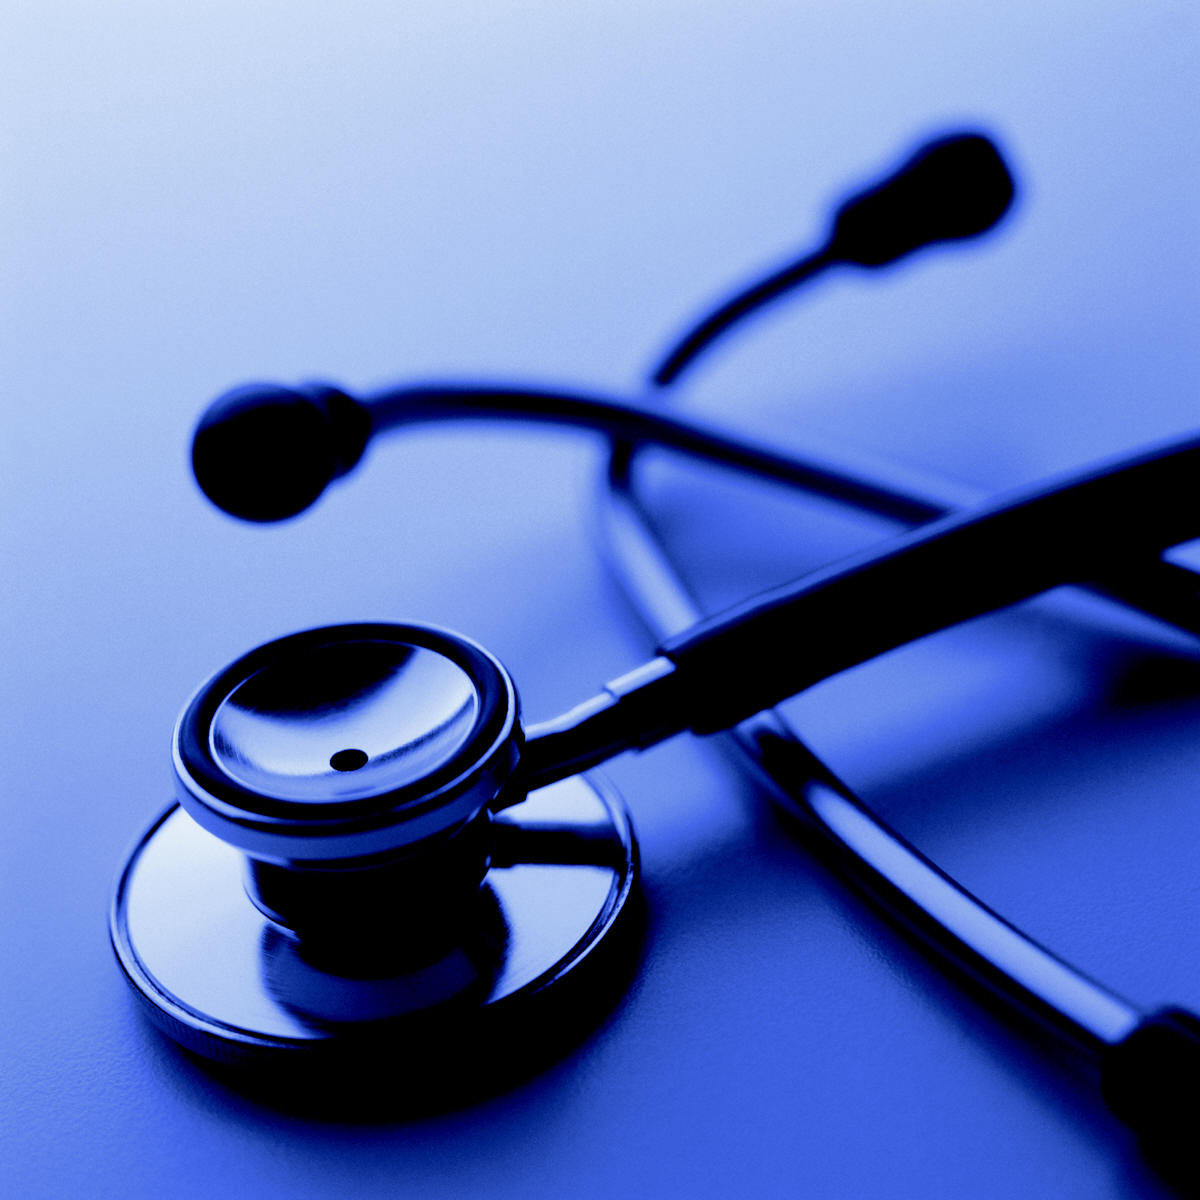 stethoscope-backgrounds-wallpapers